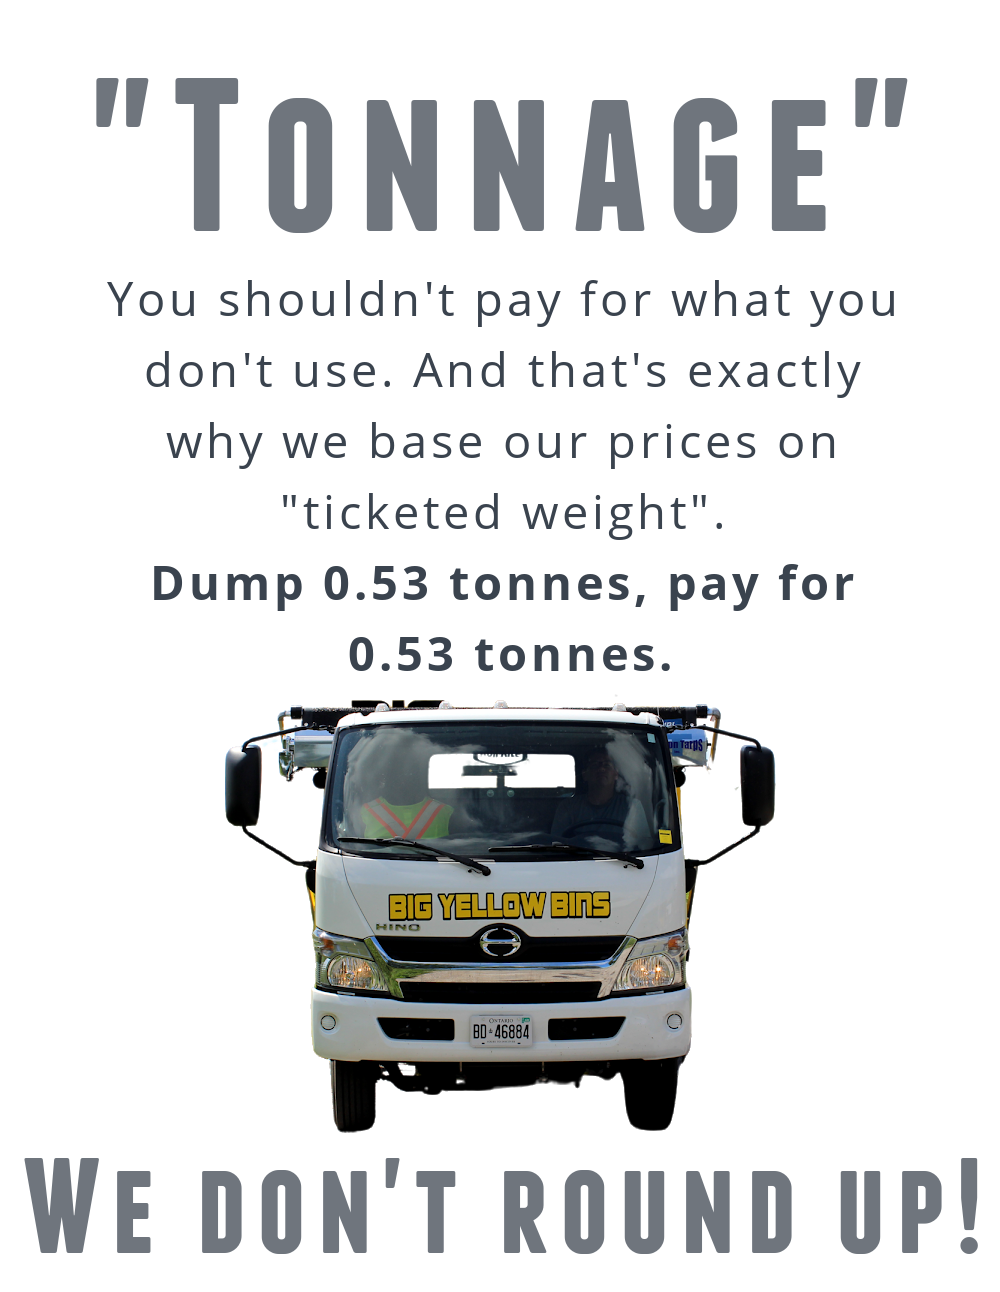 Pay for your tonnage